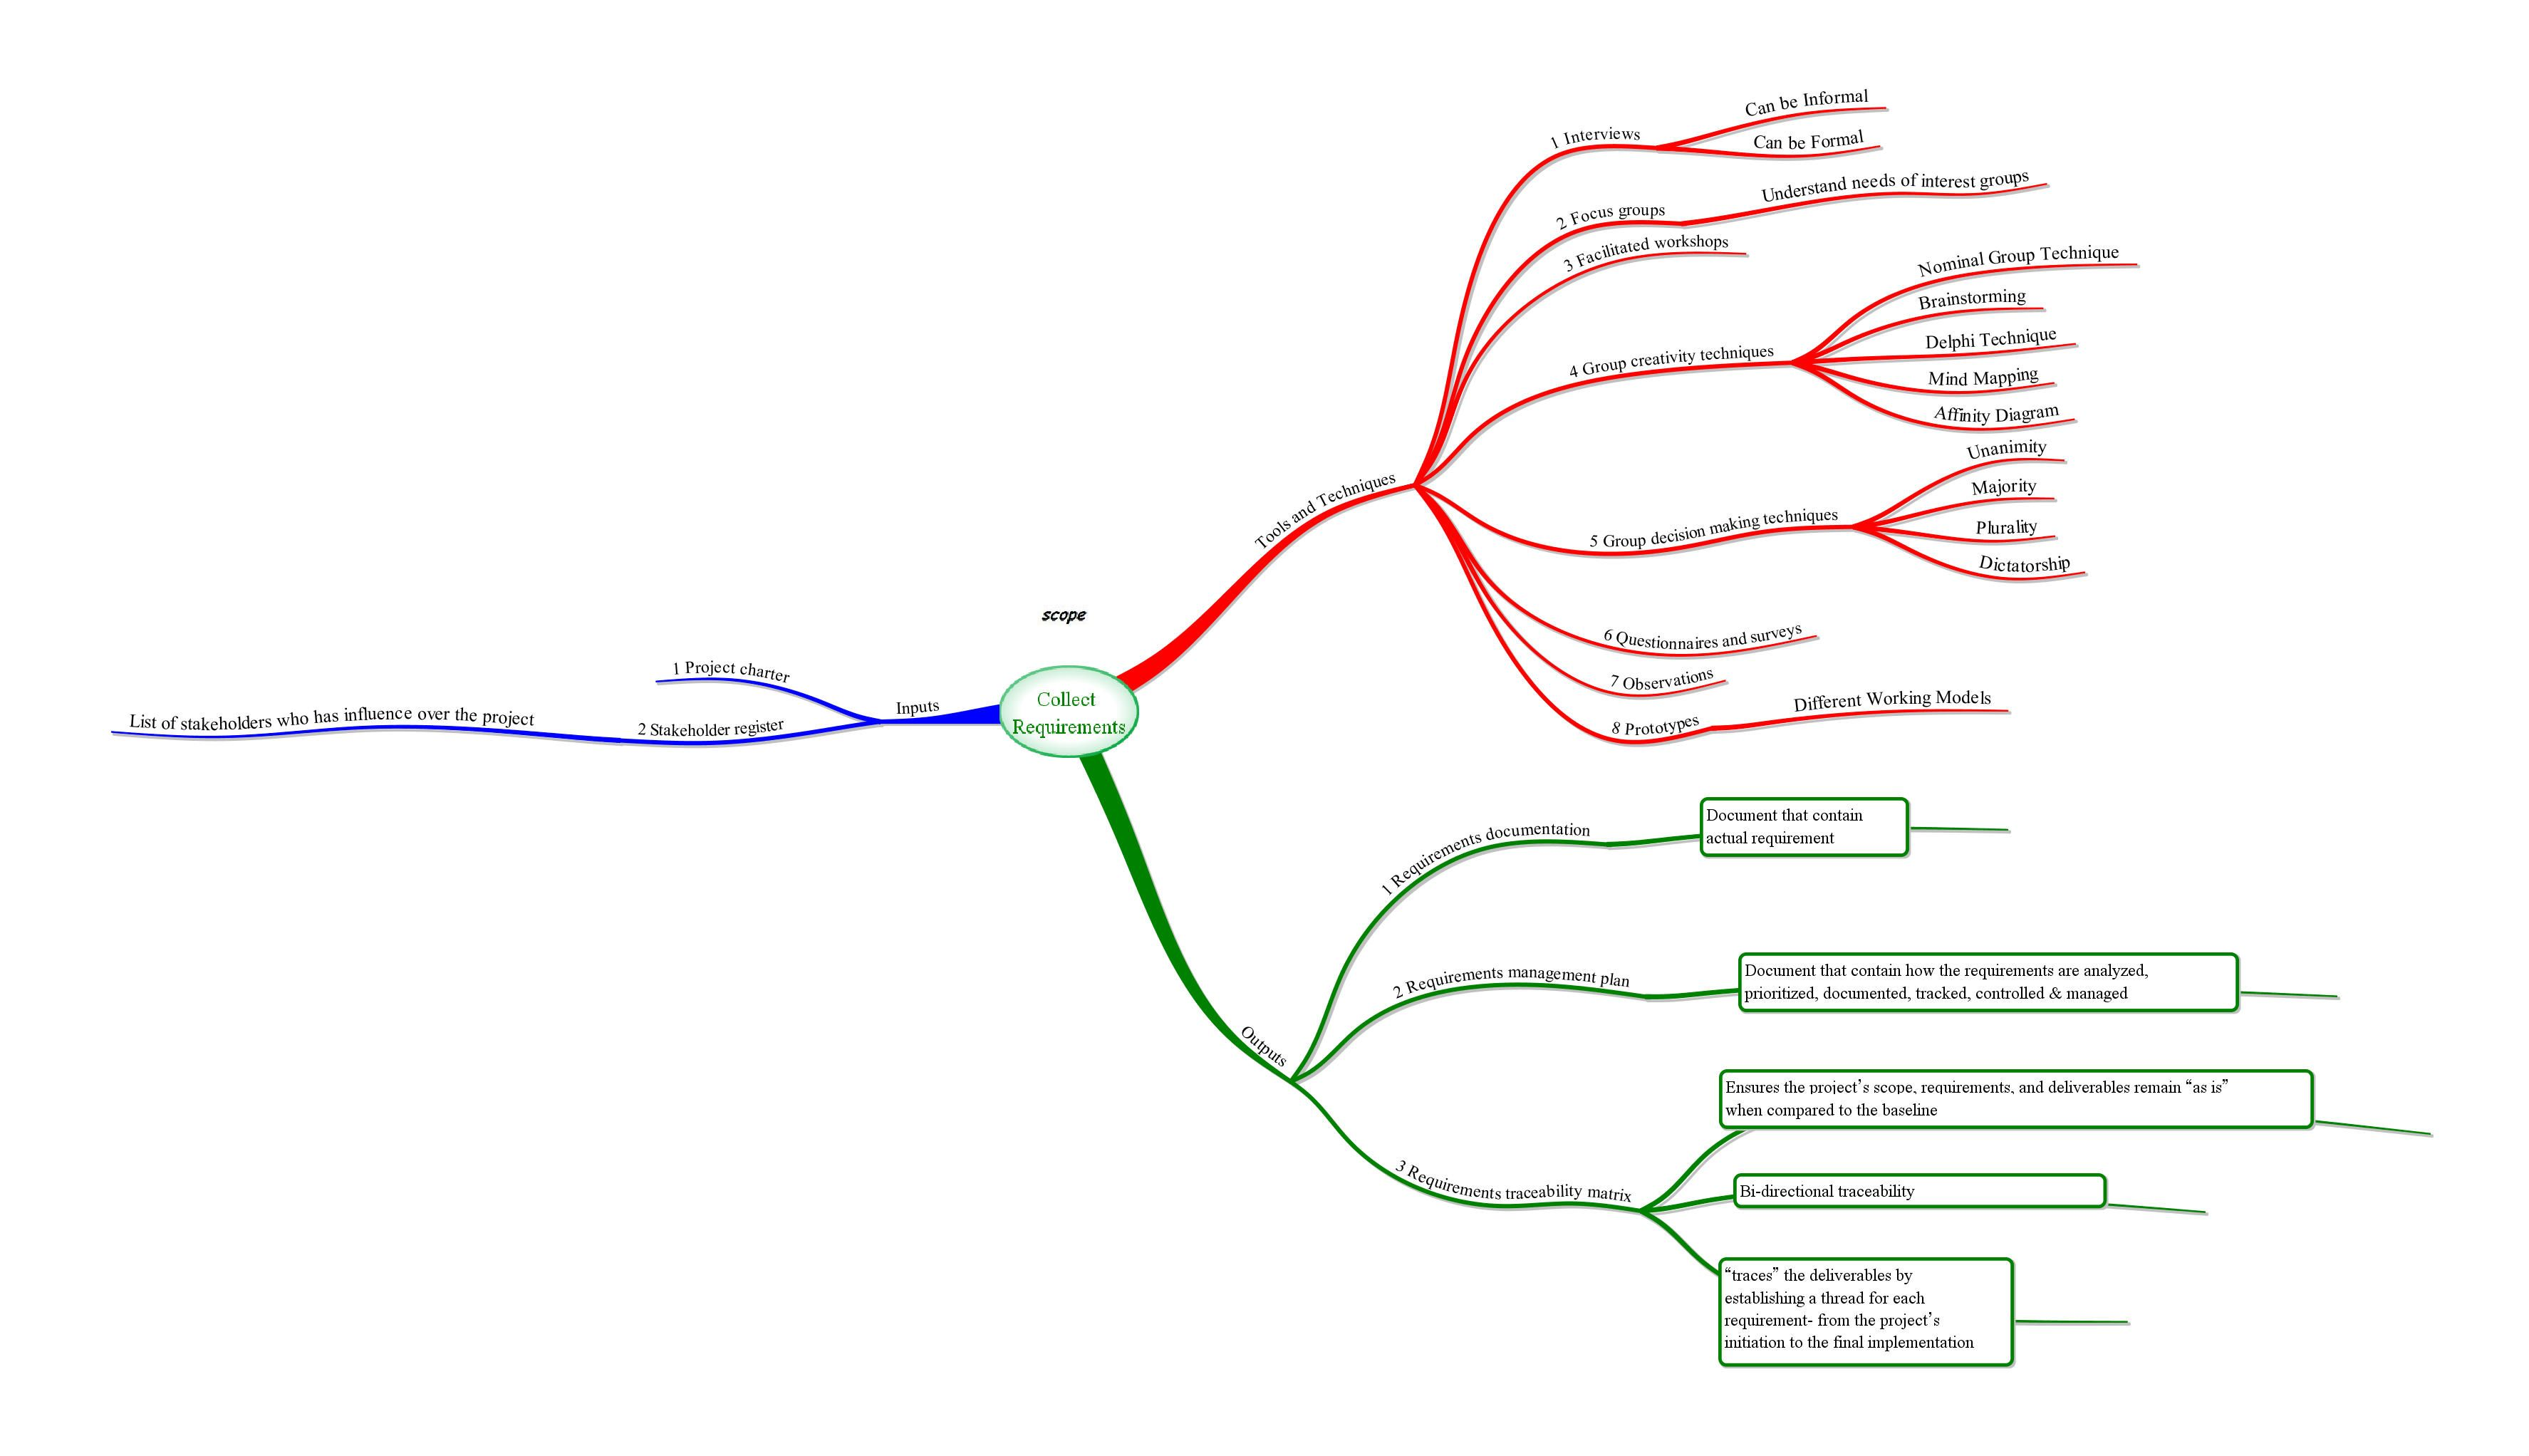 Mind map of pmp exam pmp itto chart project management capm mind map of pmp exam pmp itto chart 1betcityfo Image collections